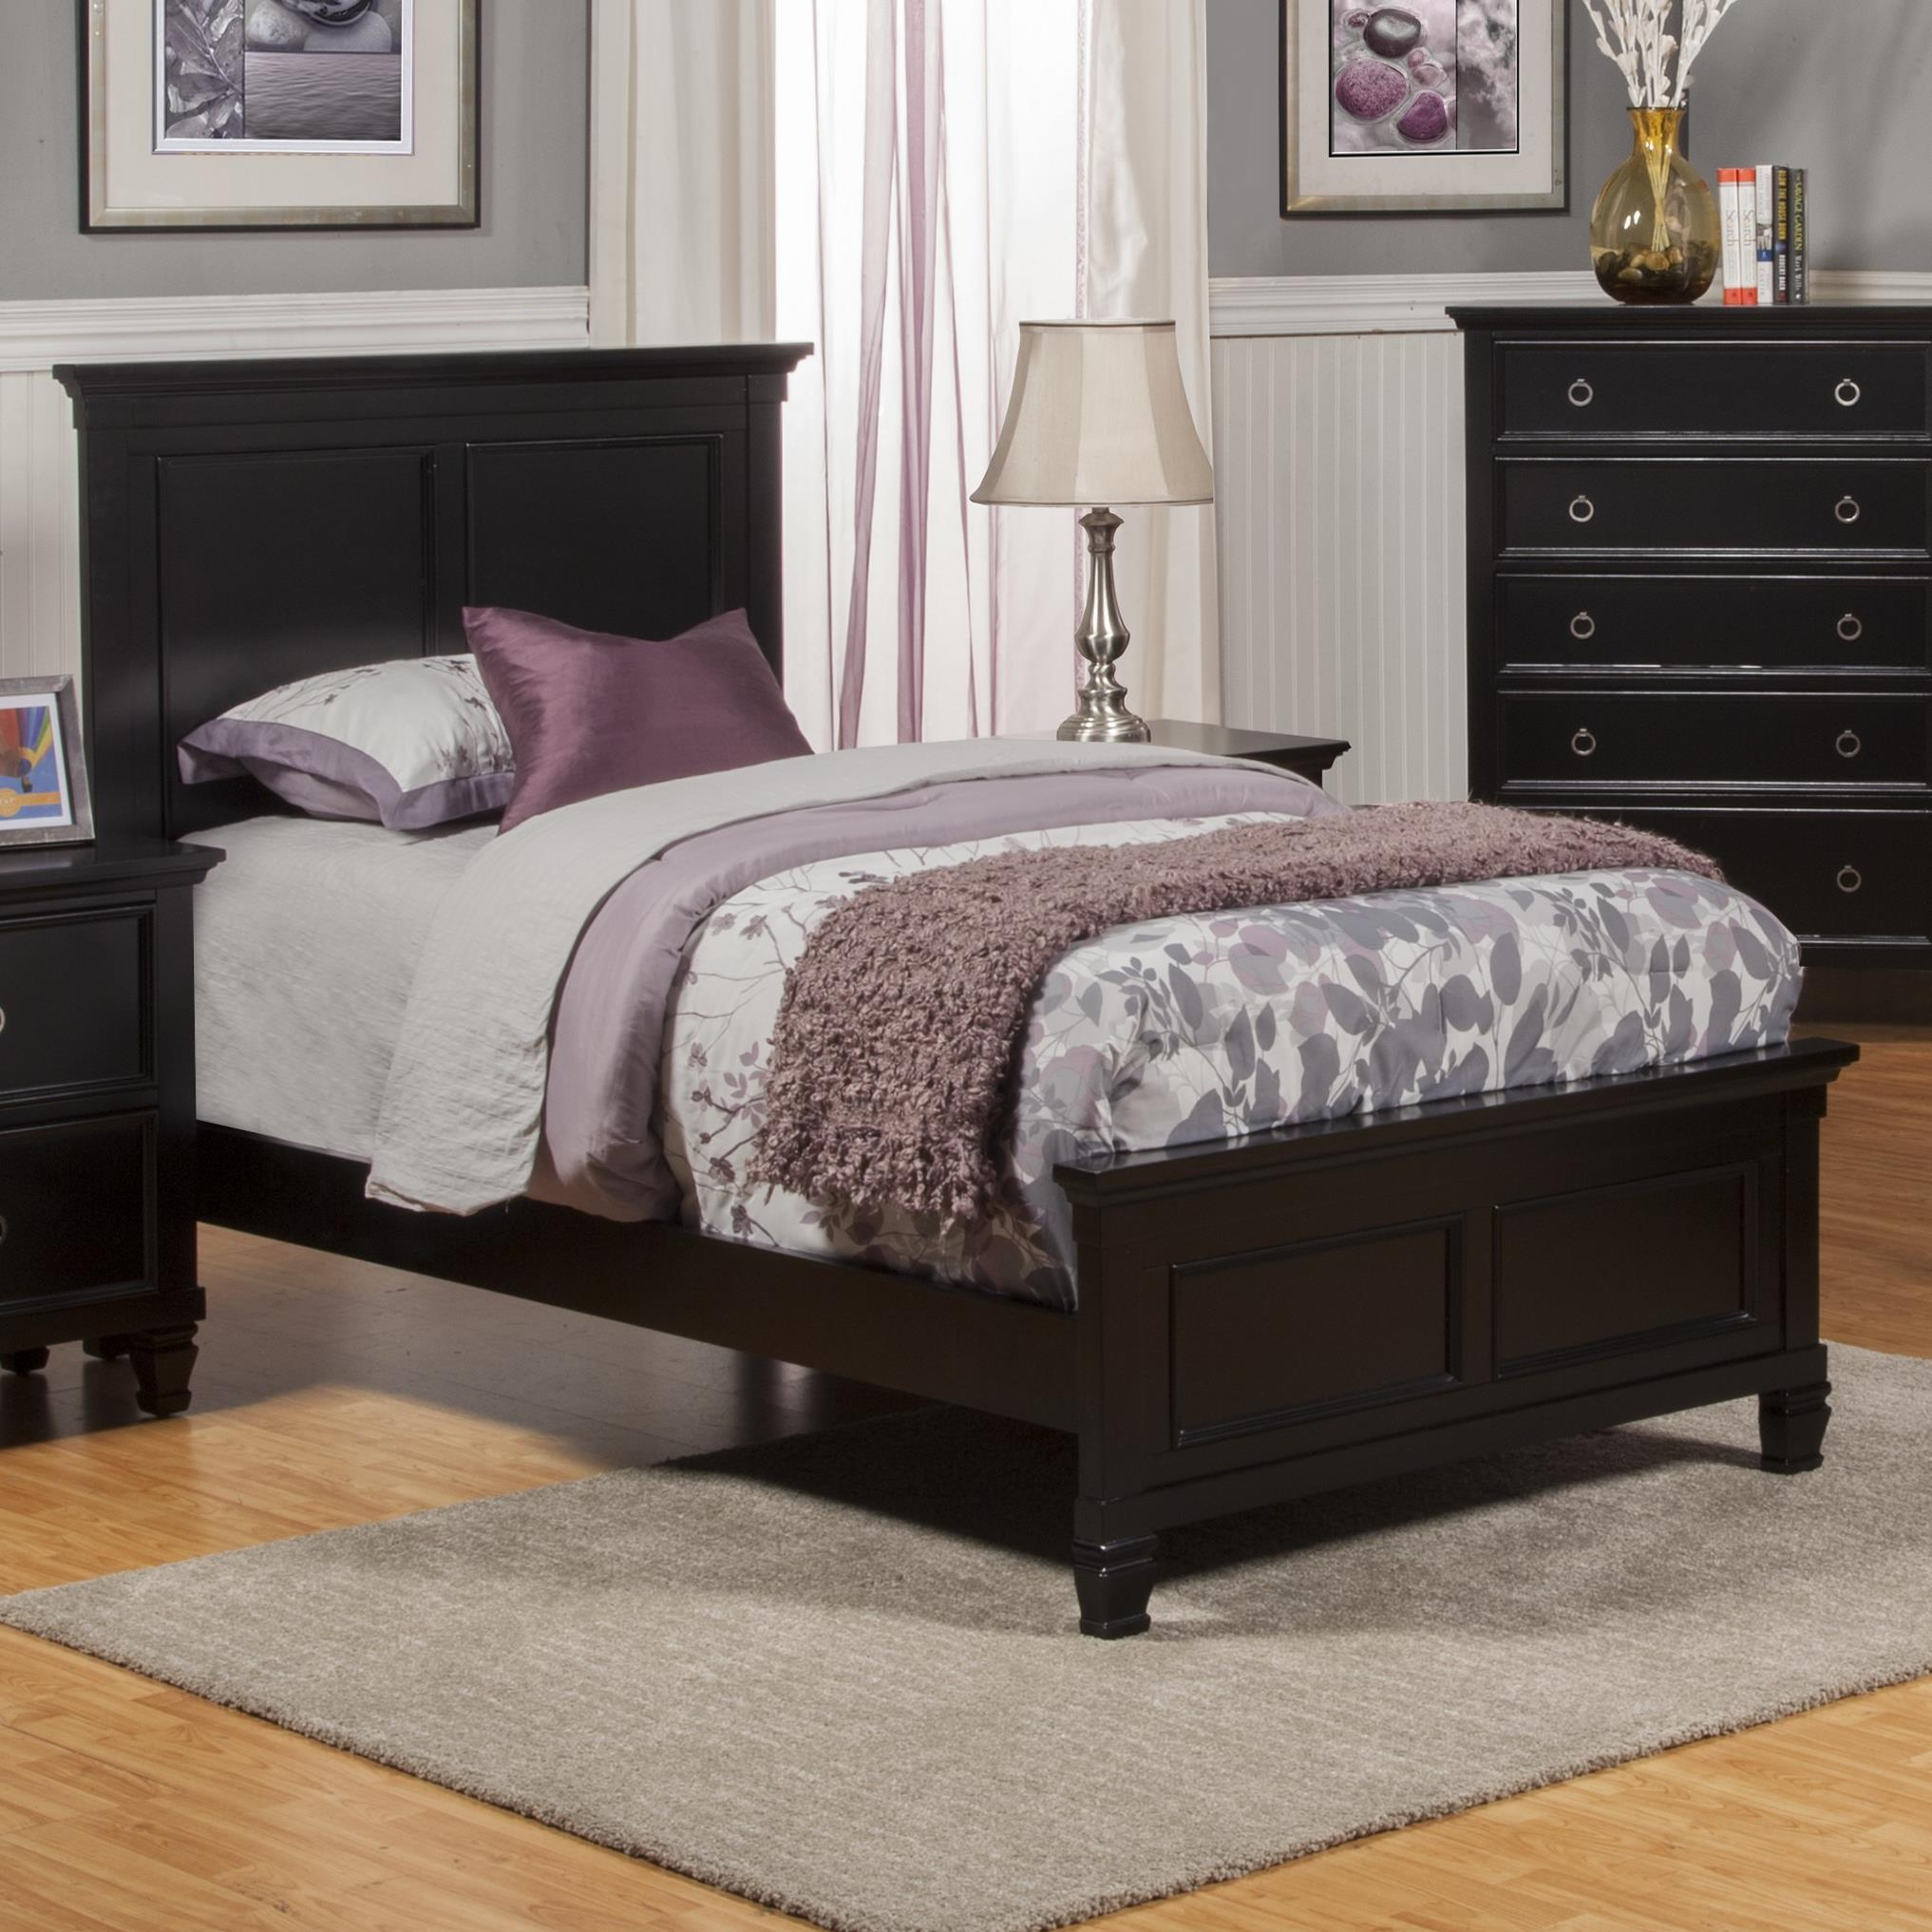 Tamarack Twin Panel Bed by New Classic at Darvin Furniture